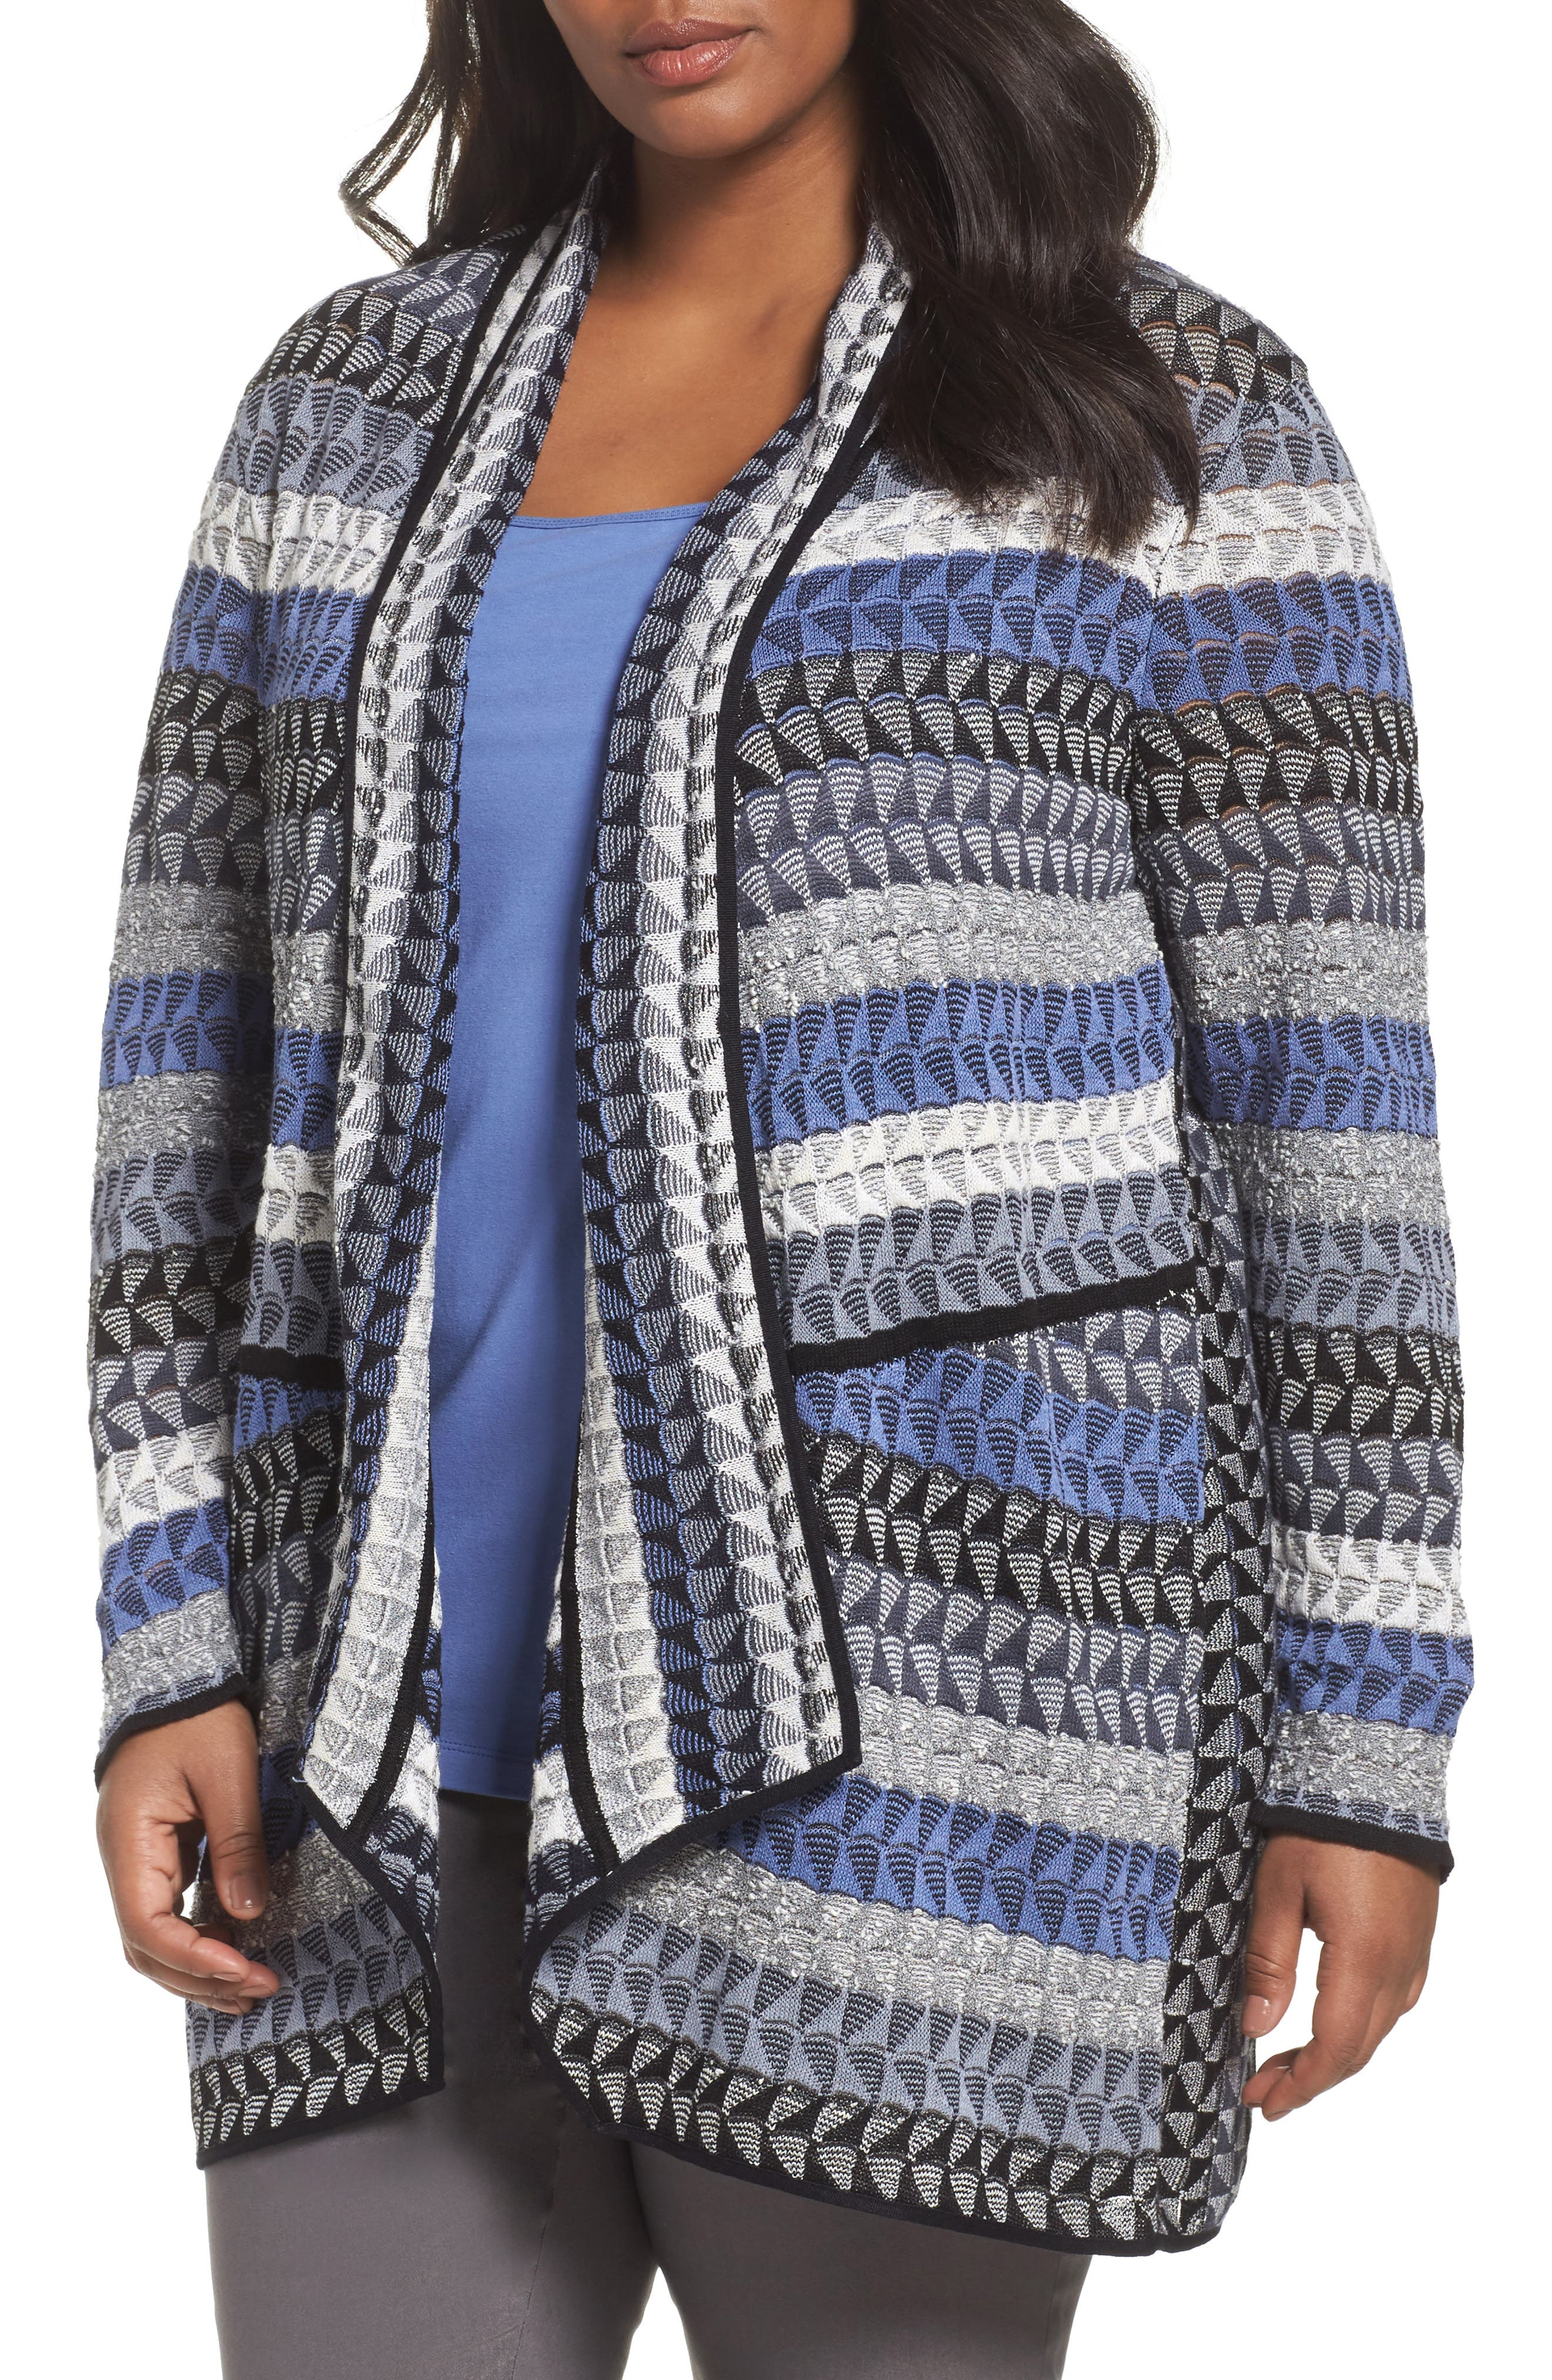 Alternate Image 1 Selected - NIC+ZOE Triangle Bliss Cardigan (Plus Size)